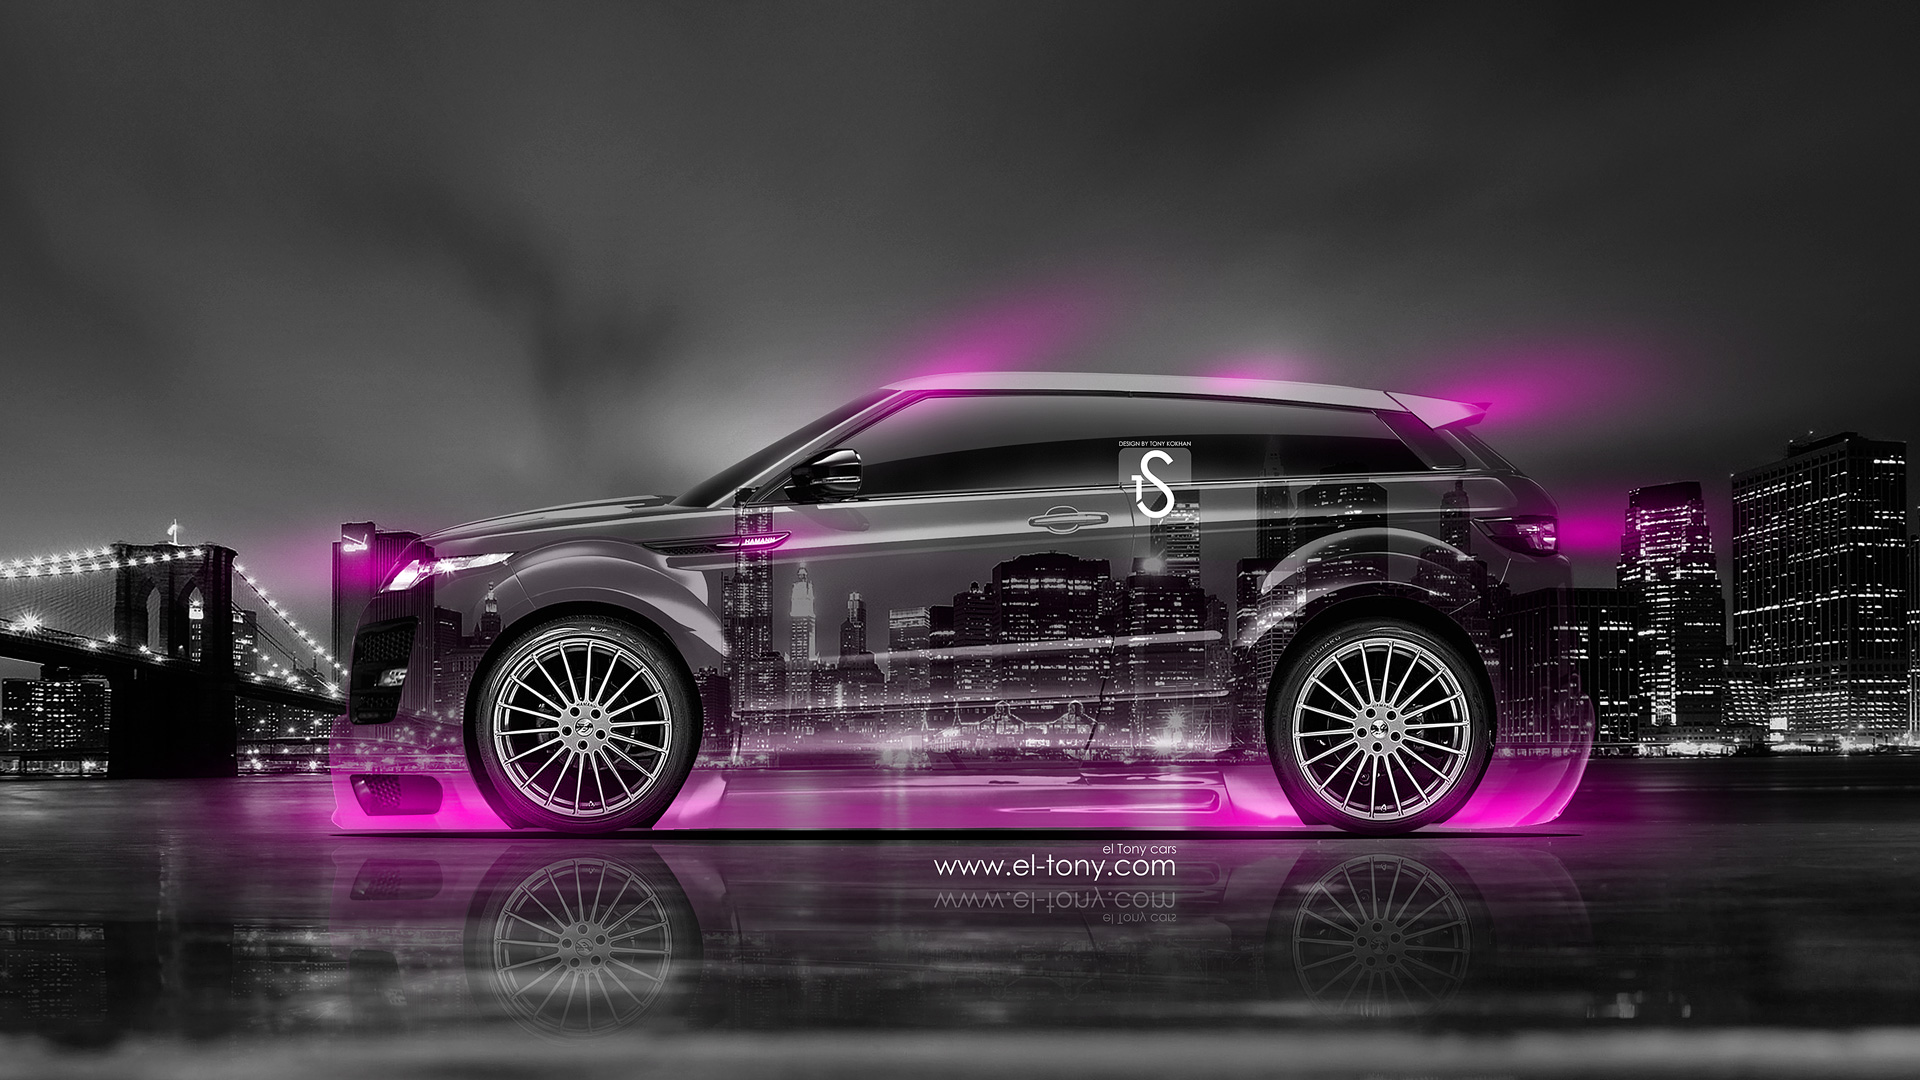 Land-Rover-Evoque-Crystal-City-Car-2014-Pink-Neon-design-by-Tony-Kokhan-[www.el-tony.com]